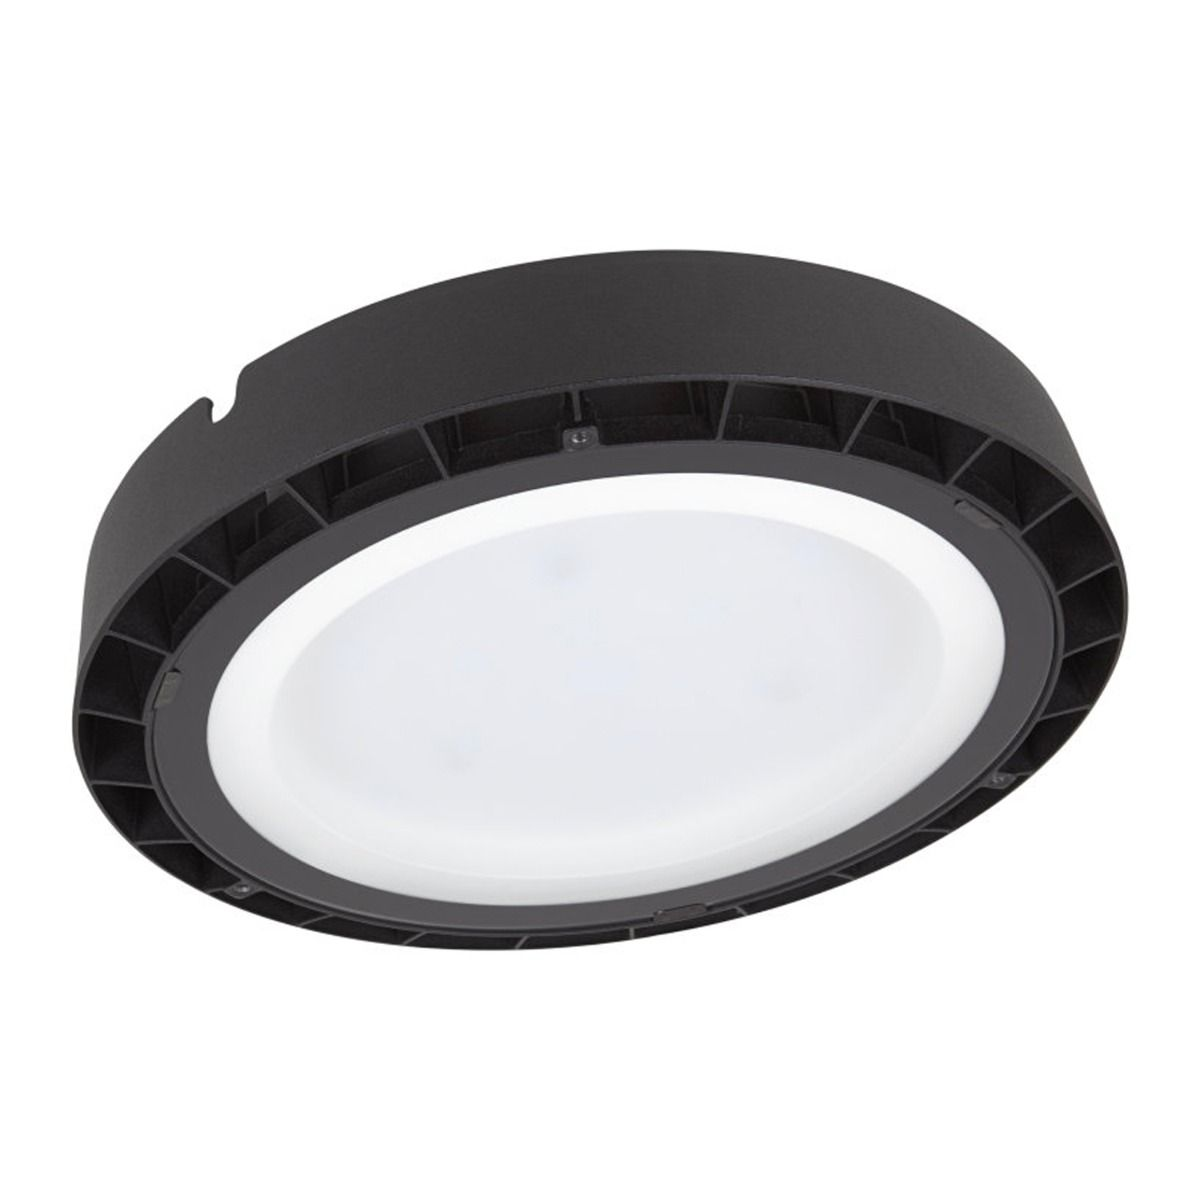 Ledvance LED High Bay Value 100W 6500K IP65 10000lm 100D | Vervanger voor 200W